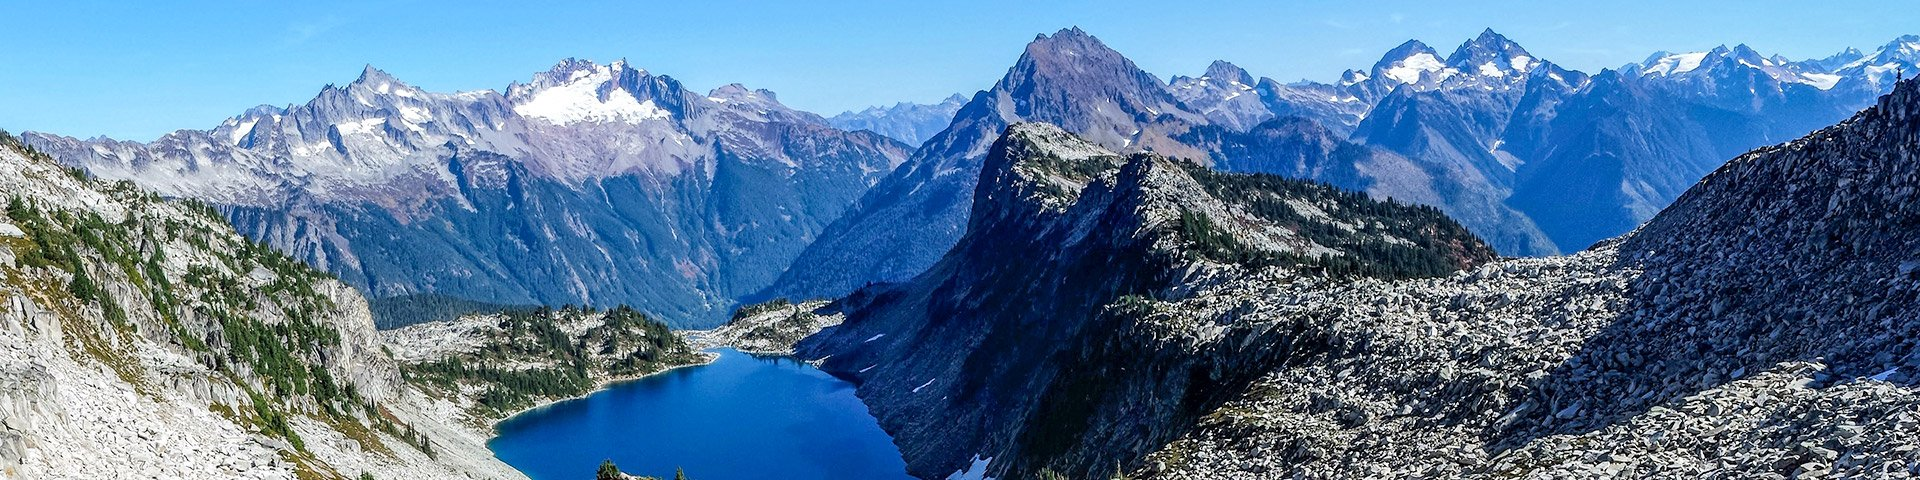 Hidden Lake Trail Hike in North Cascades National Park